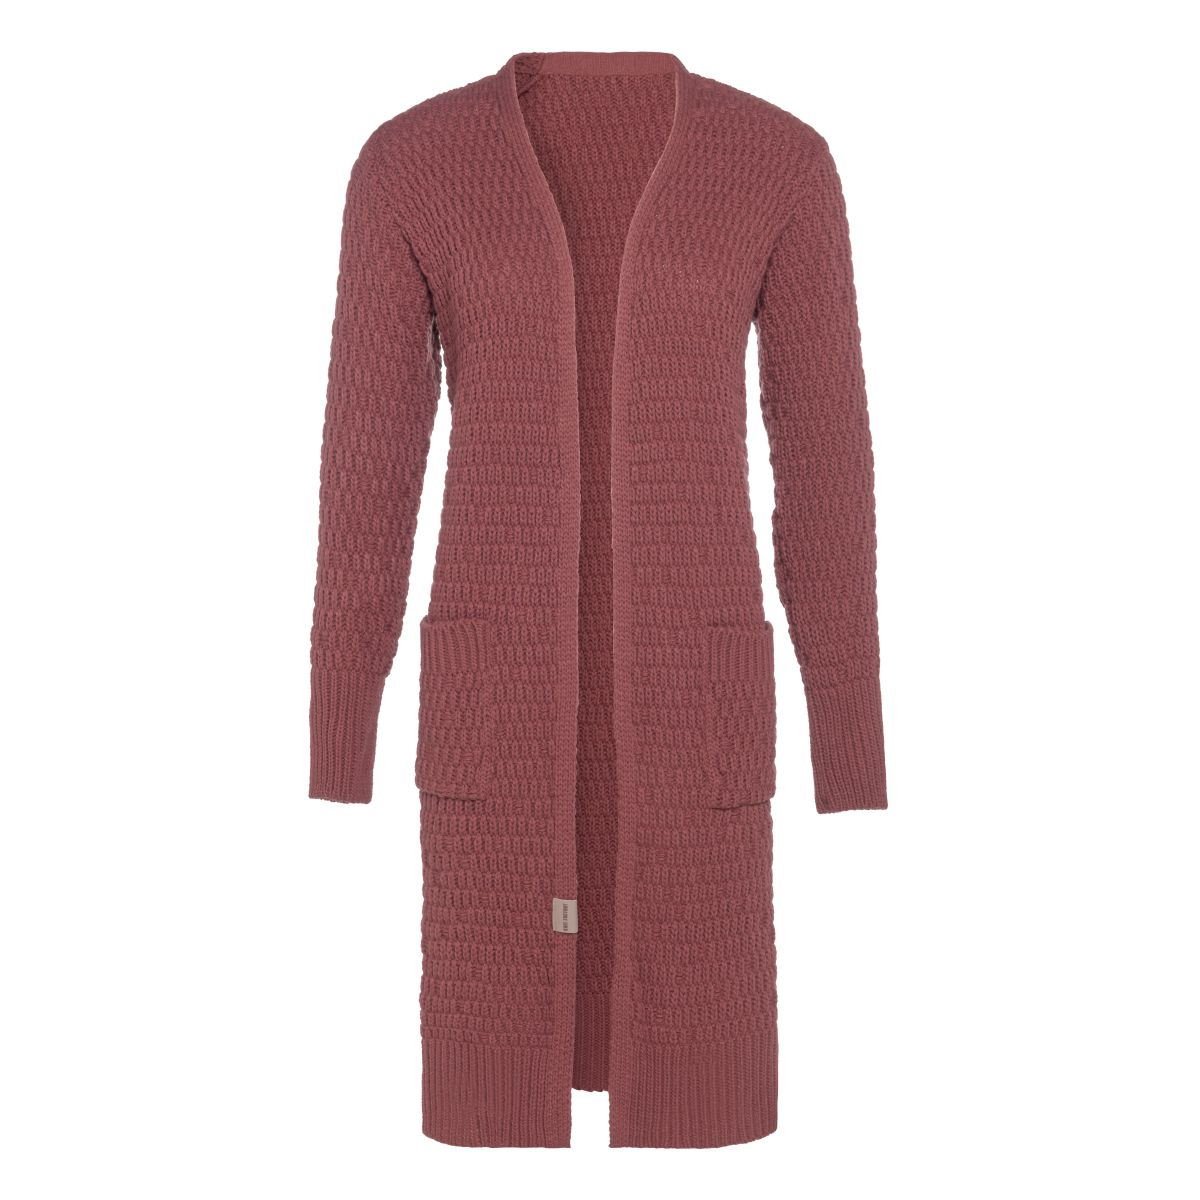 jaida long knitted cardigan stone red 4042 with side pockets